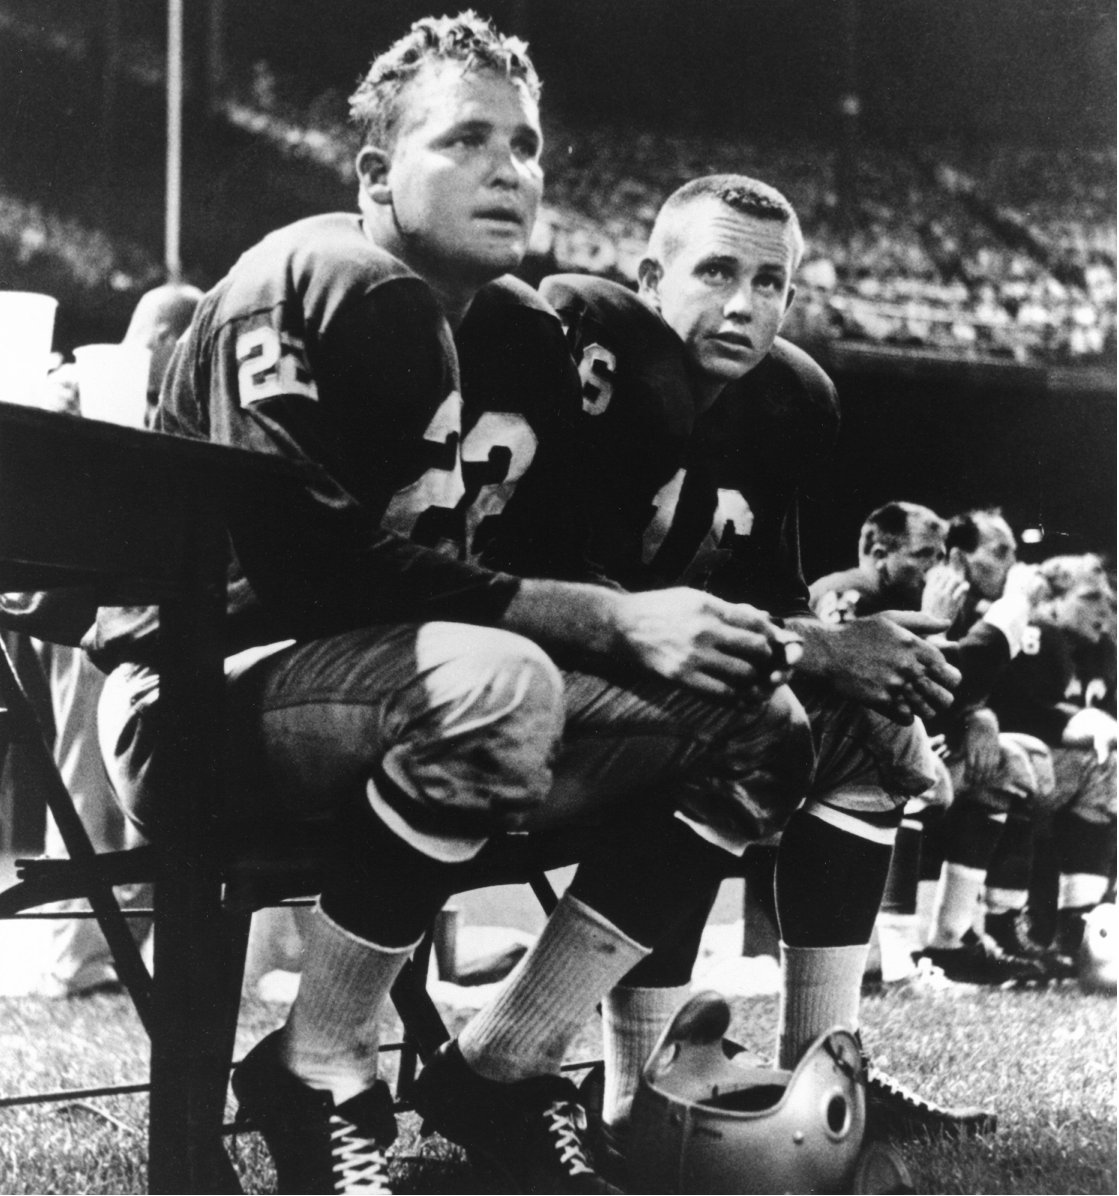 At right, Jack Kemp, with teammate Bobby Lane, while playing for the Pittsburgh Steelers.